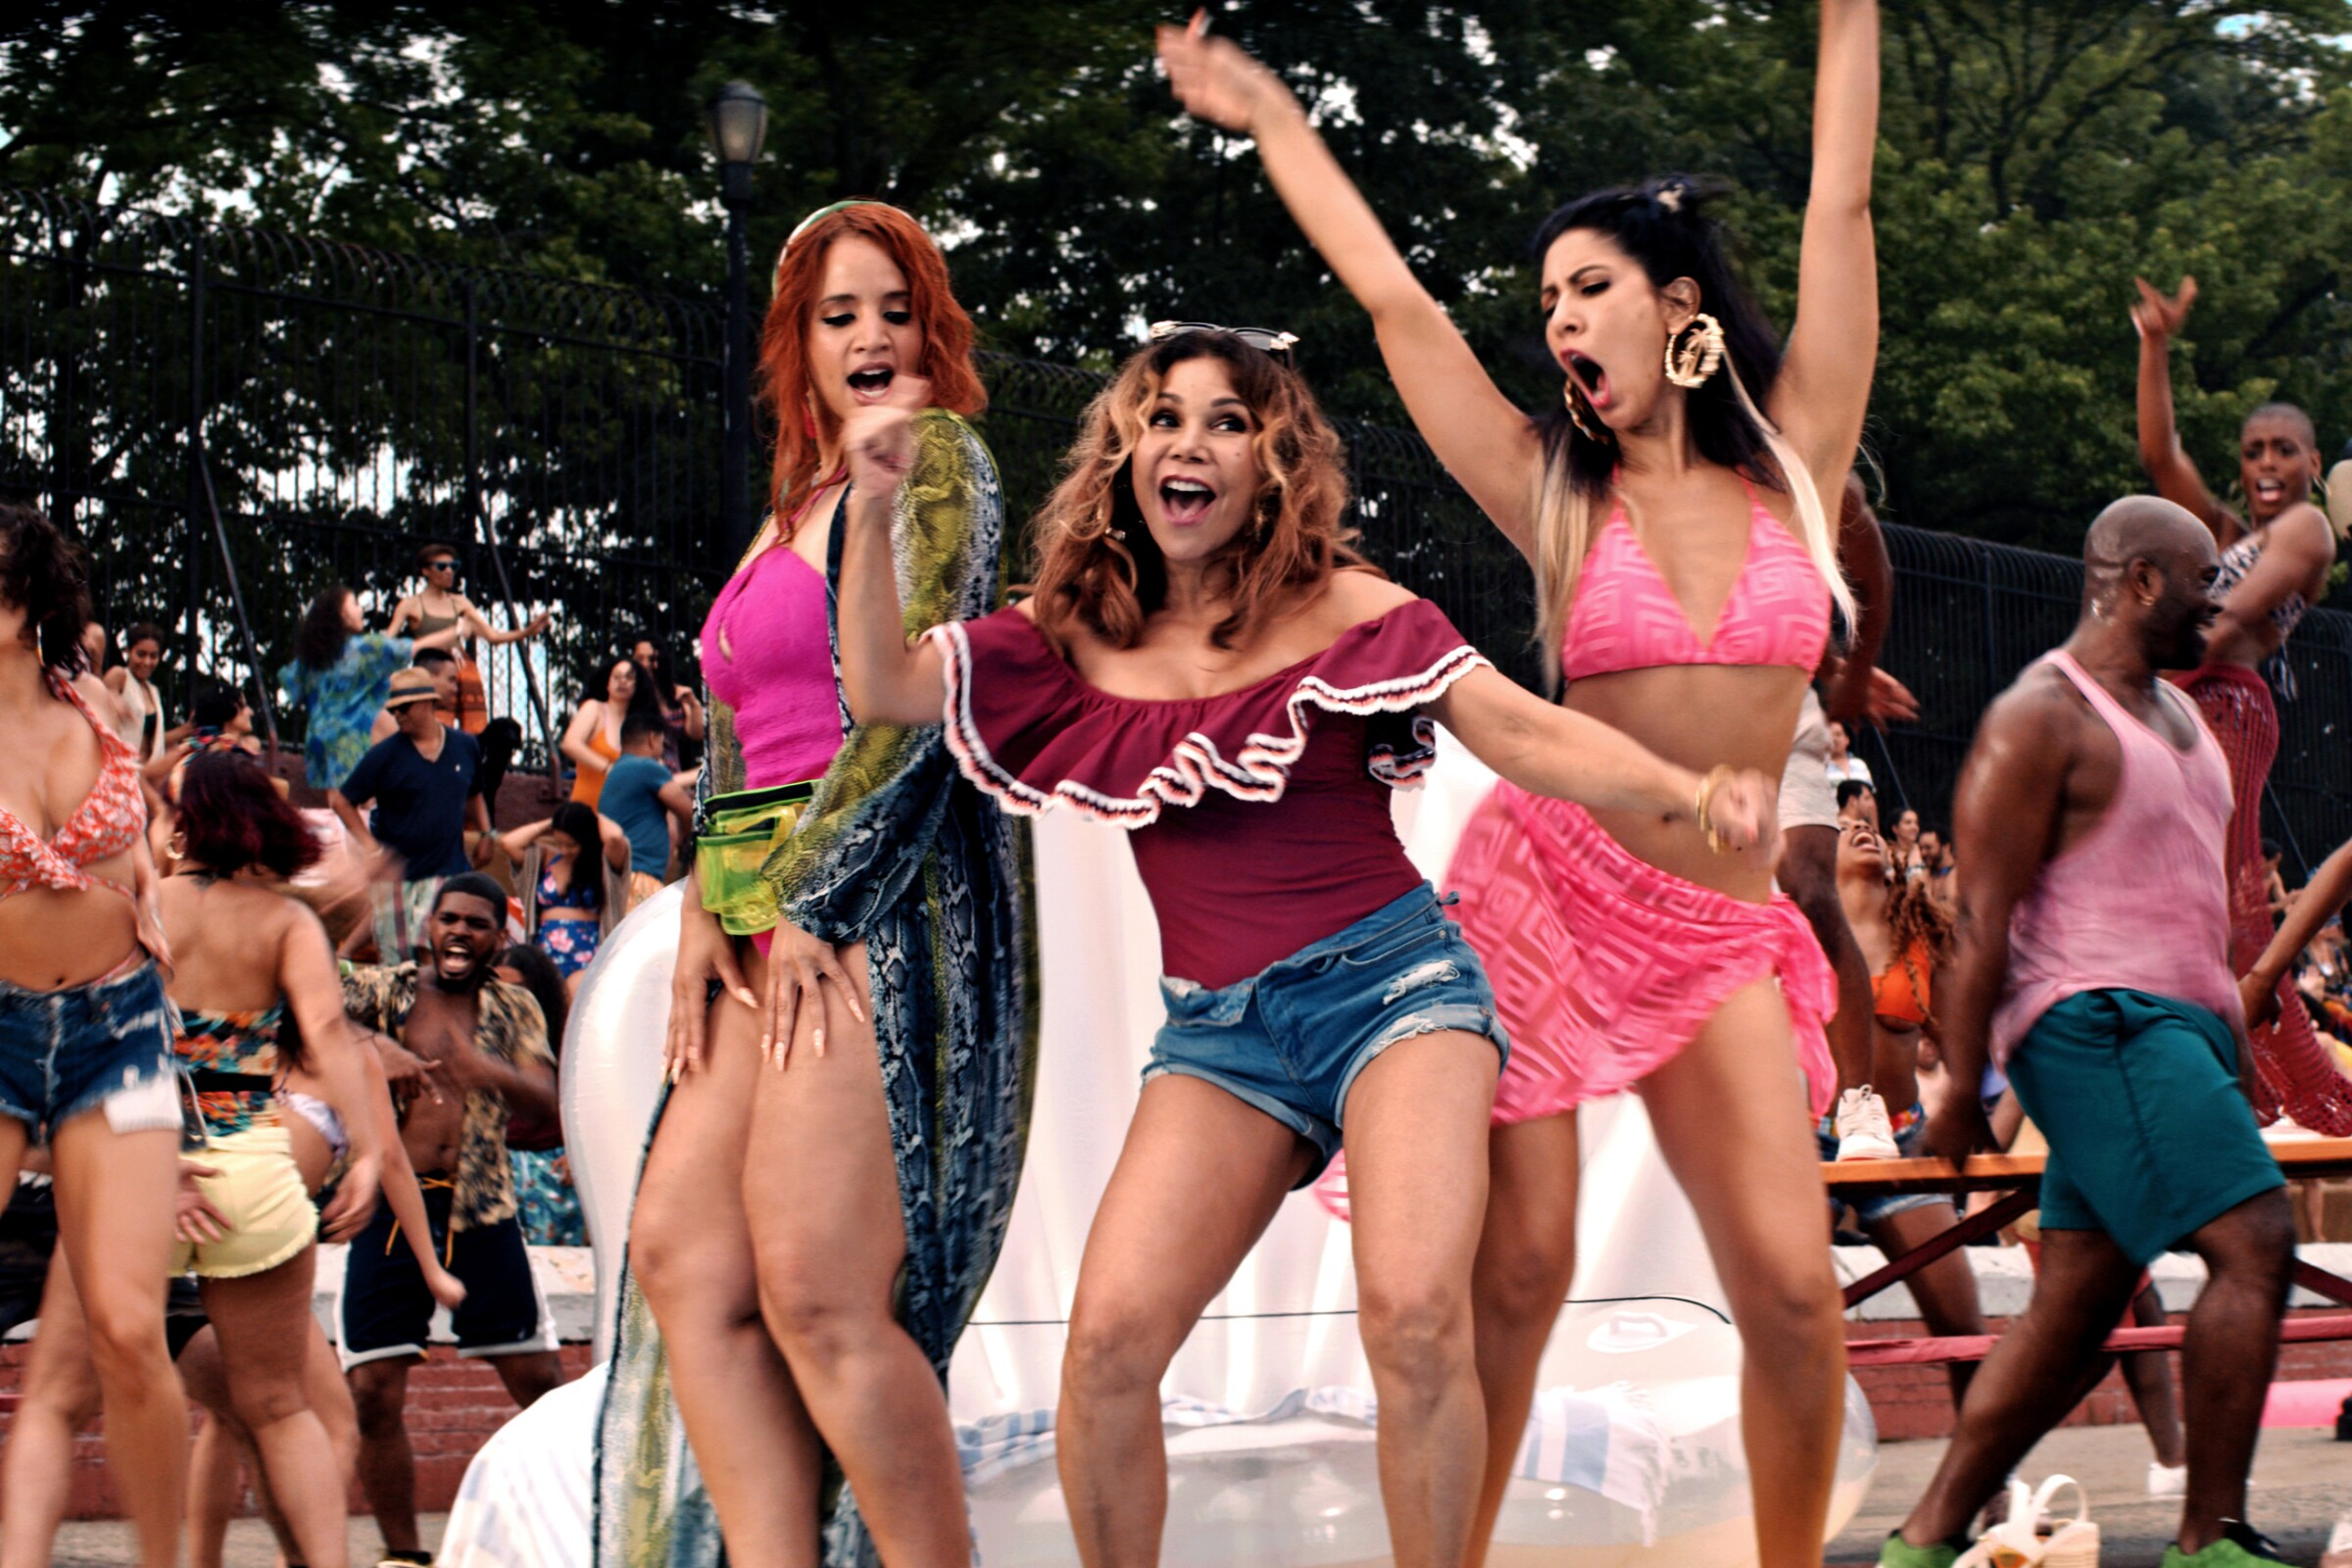 """A scene from """"In the Heights"""" shows people dancing on a pool deck."""